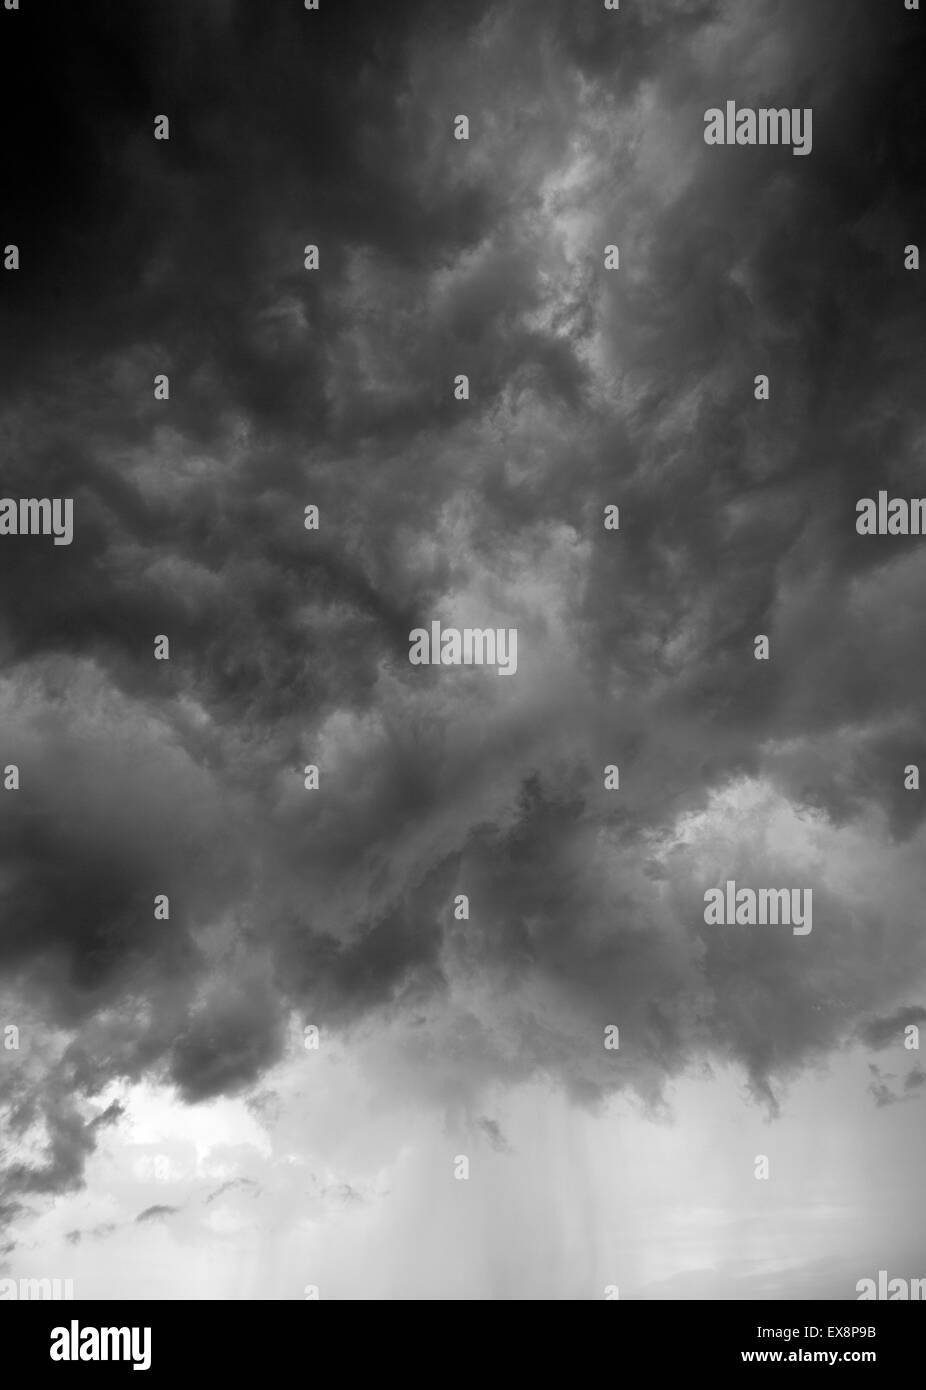 Dramatic Storm Clouds Gathering - Stock Image